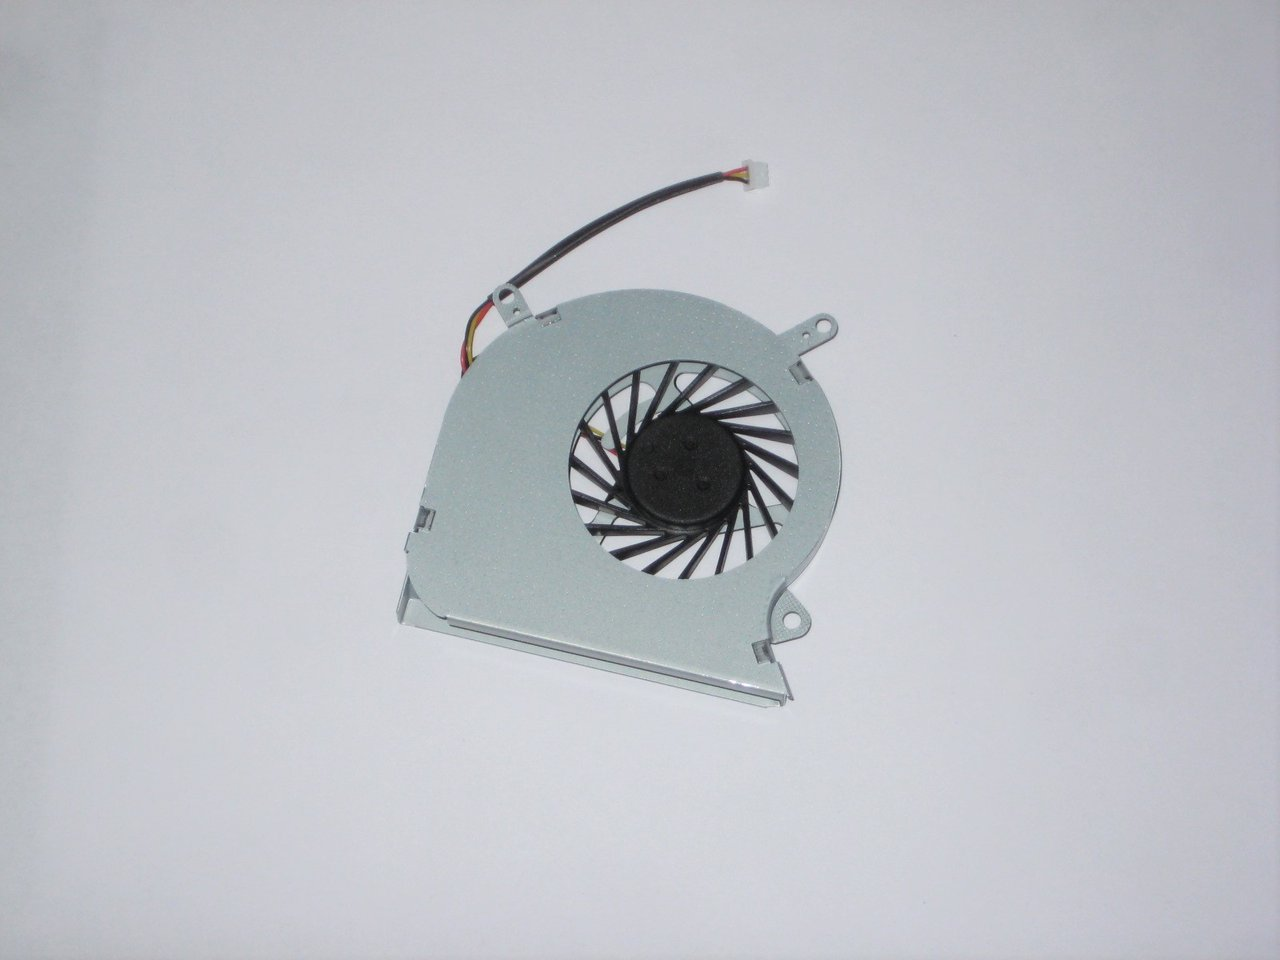 AAVID PAAD06015SL Cooling FAN for MSI GE60 Notebook